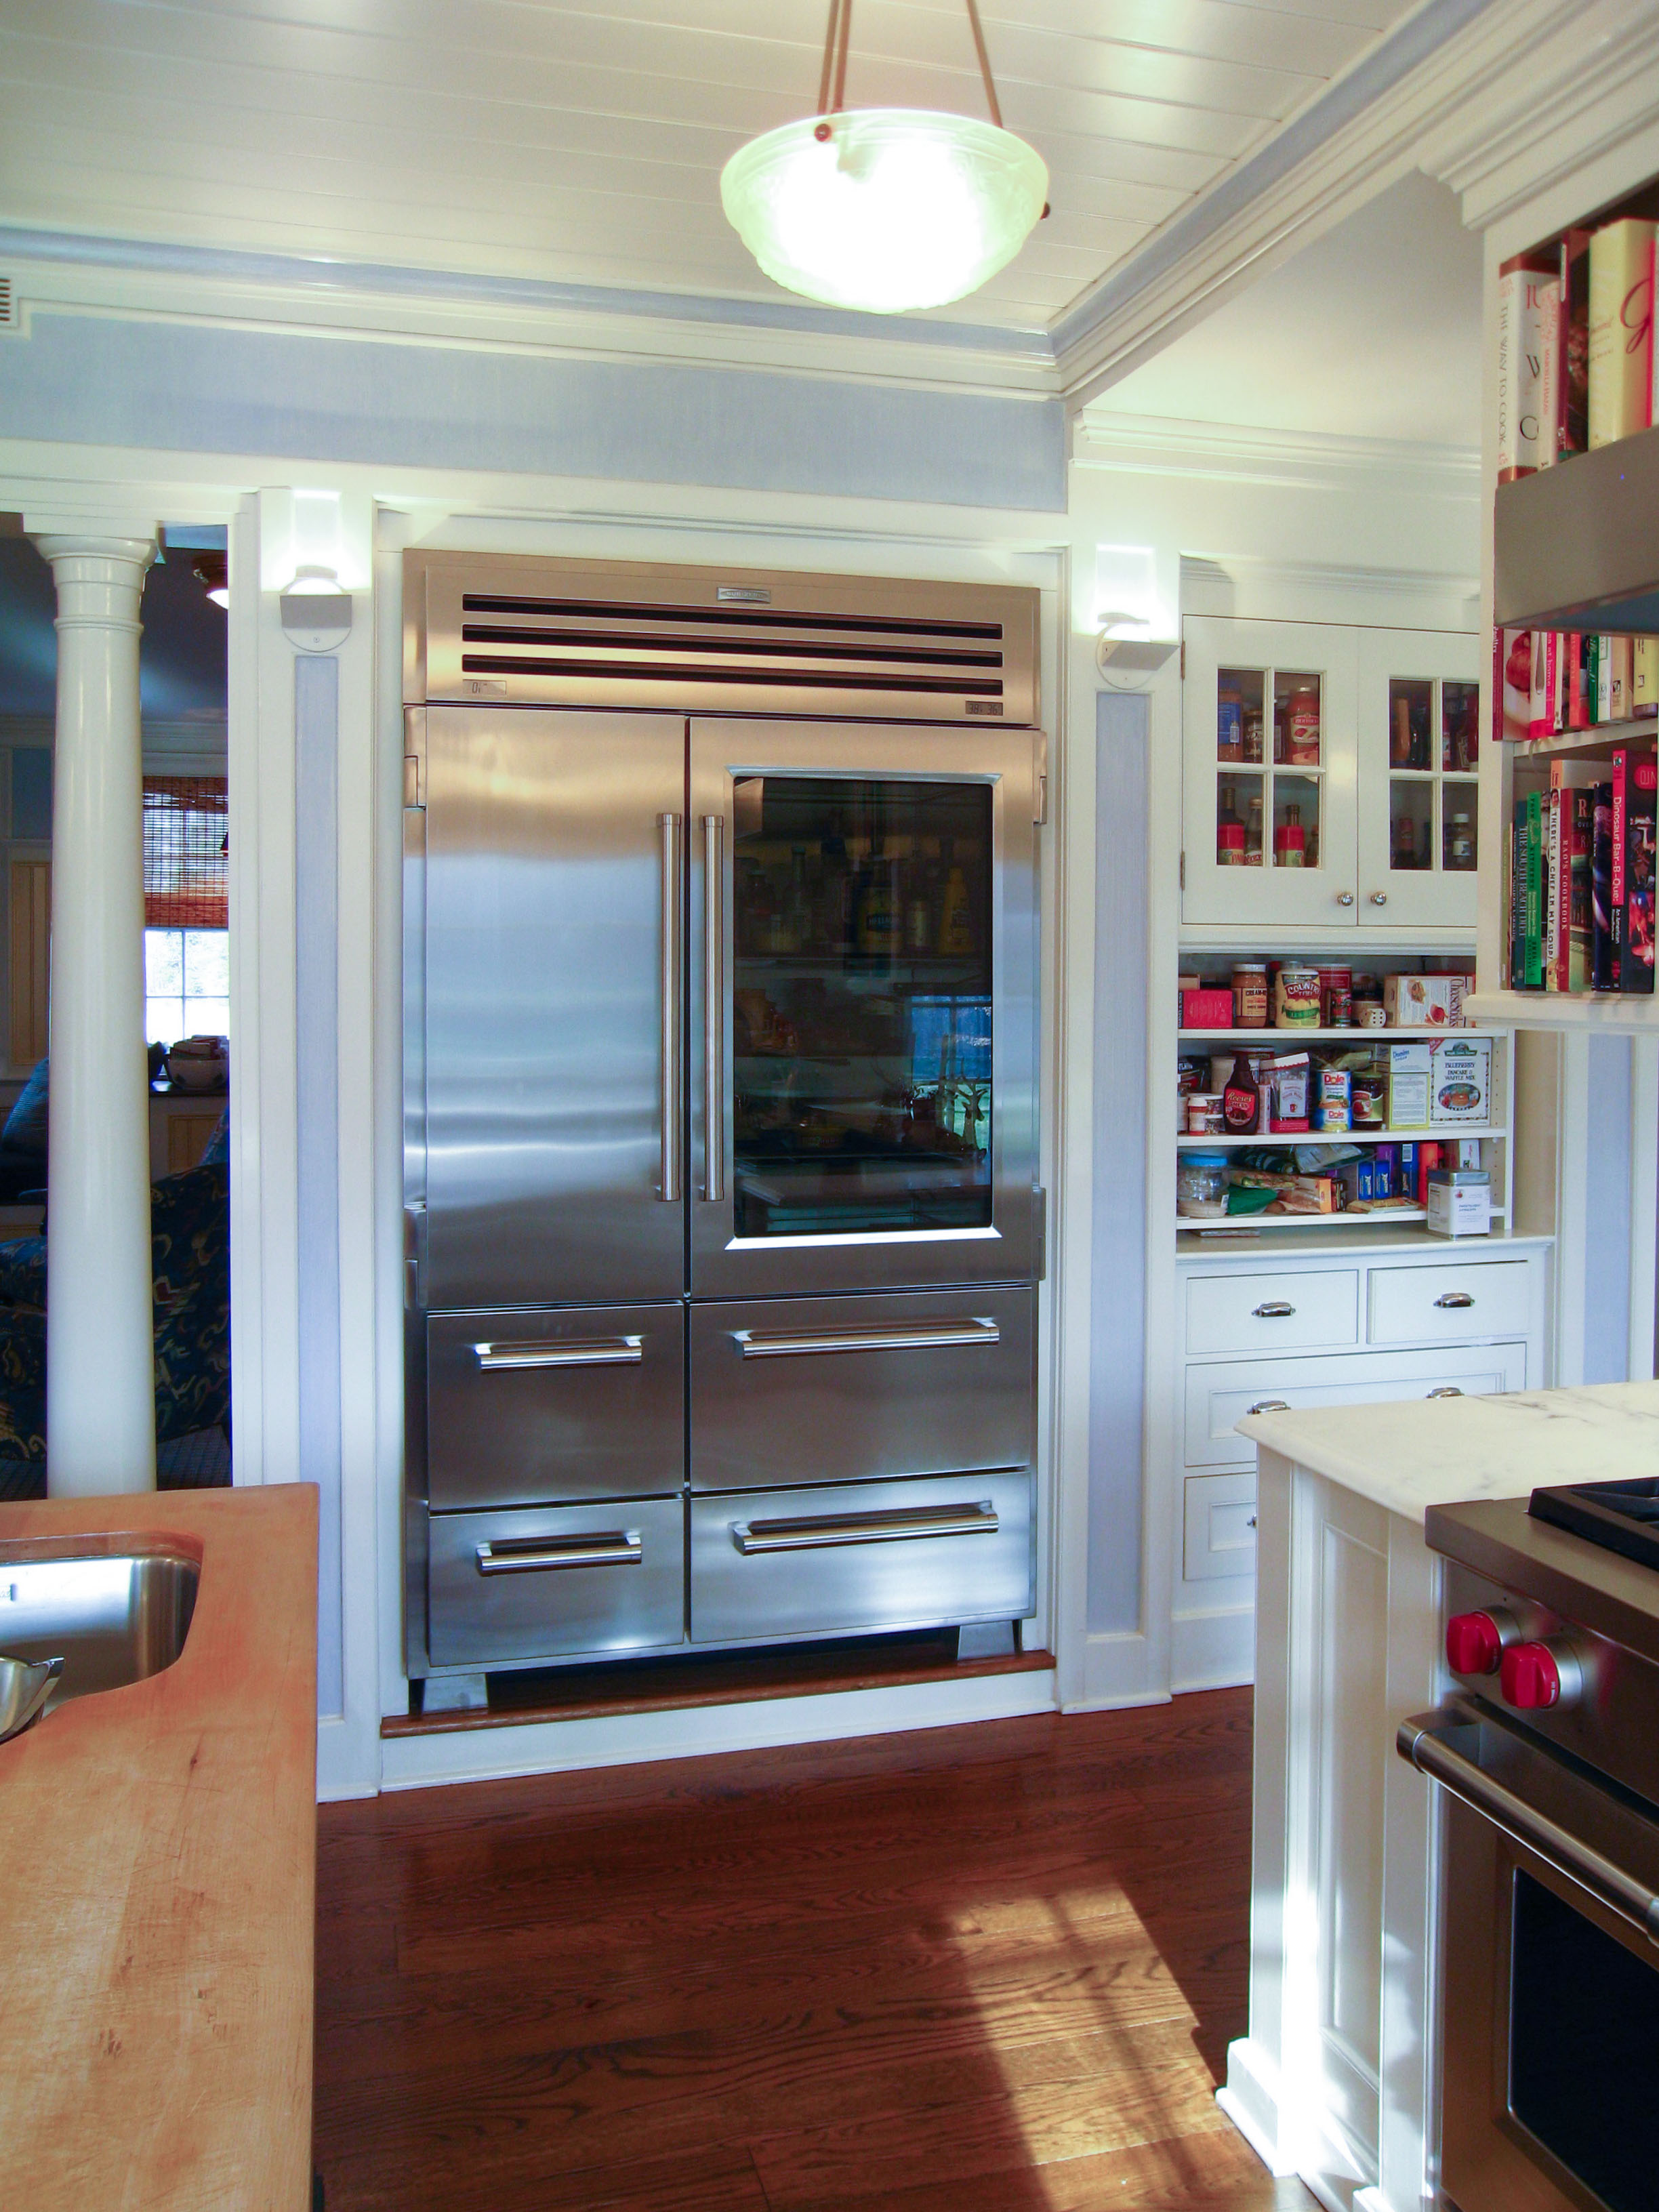 Glass Front Refrigerator For Home